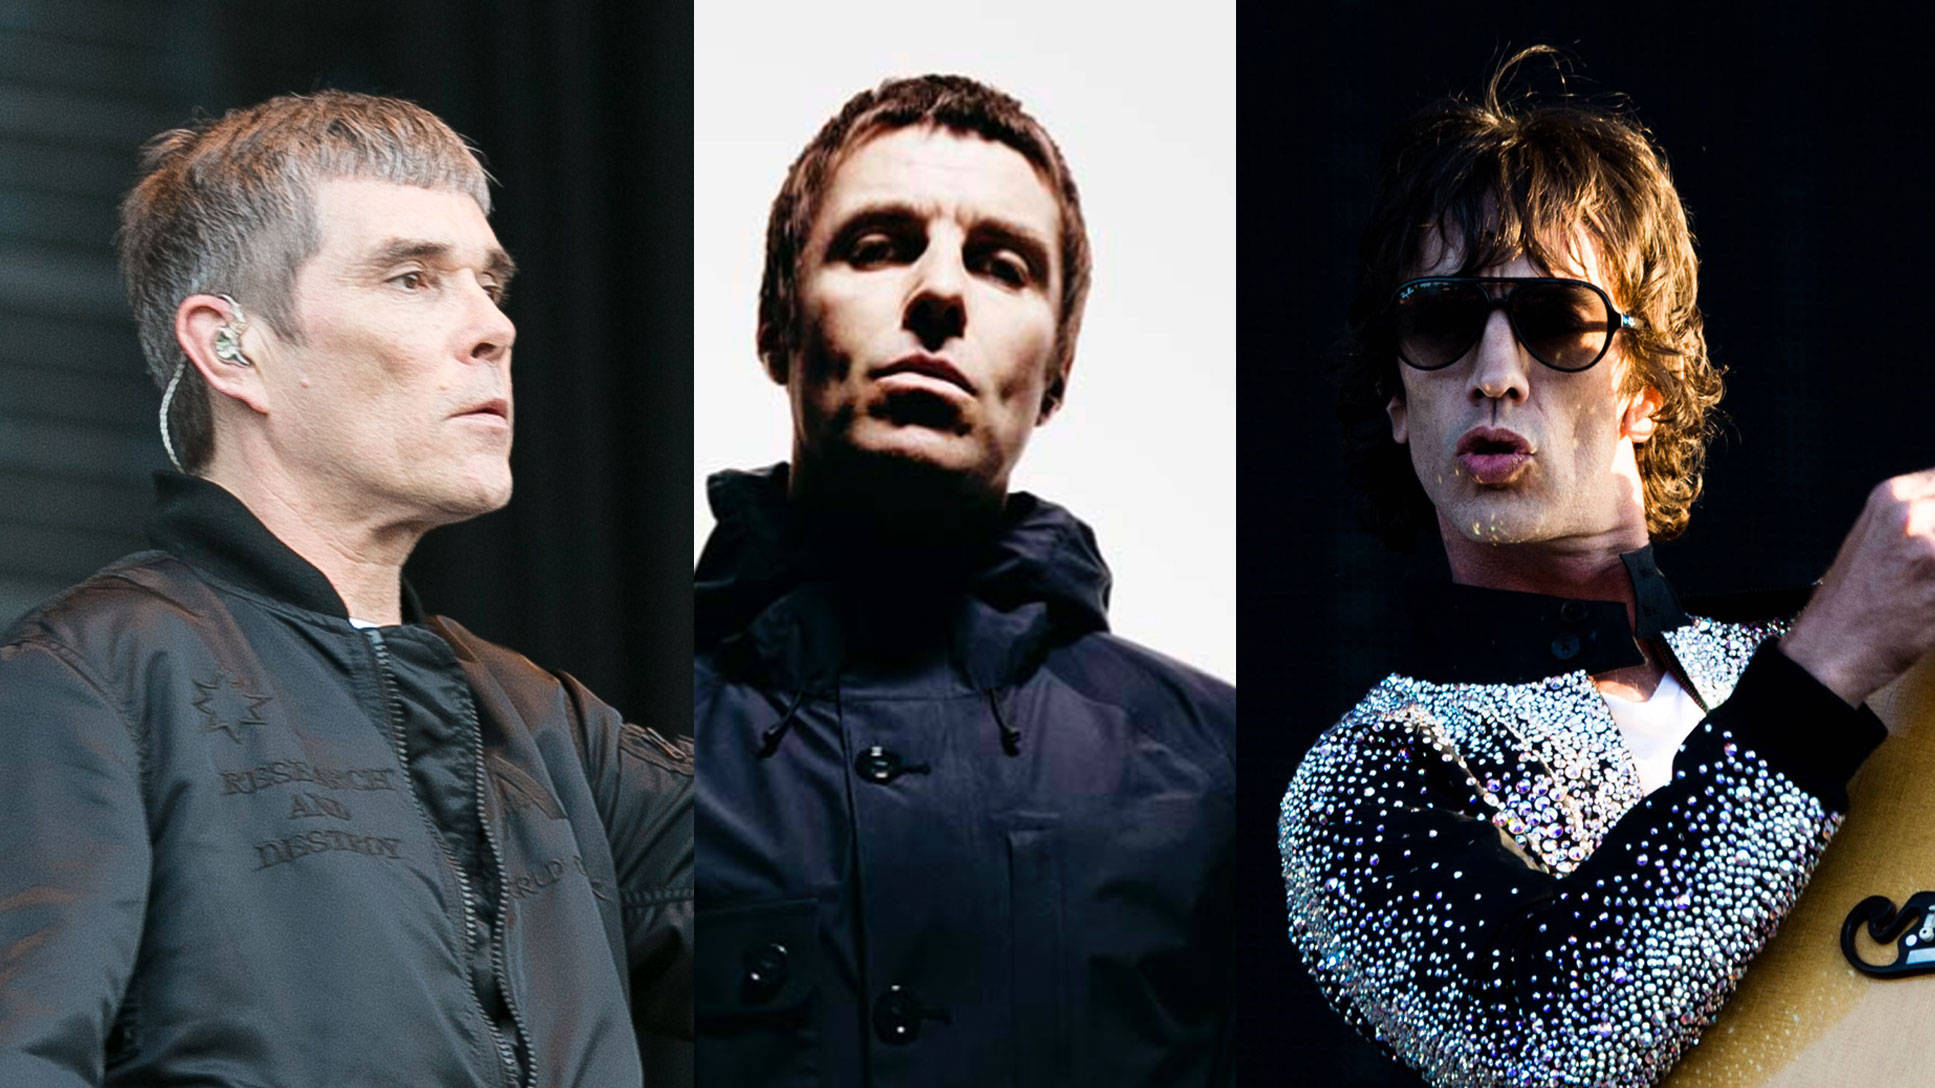 Liam Gallagher asked who he prefers out Ian Brown & Richard Ashcroft